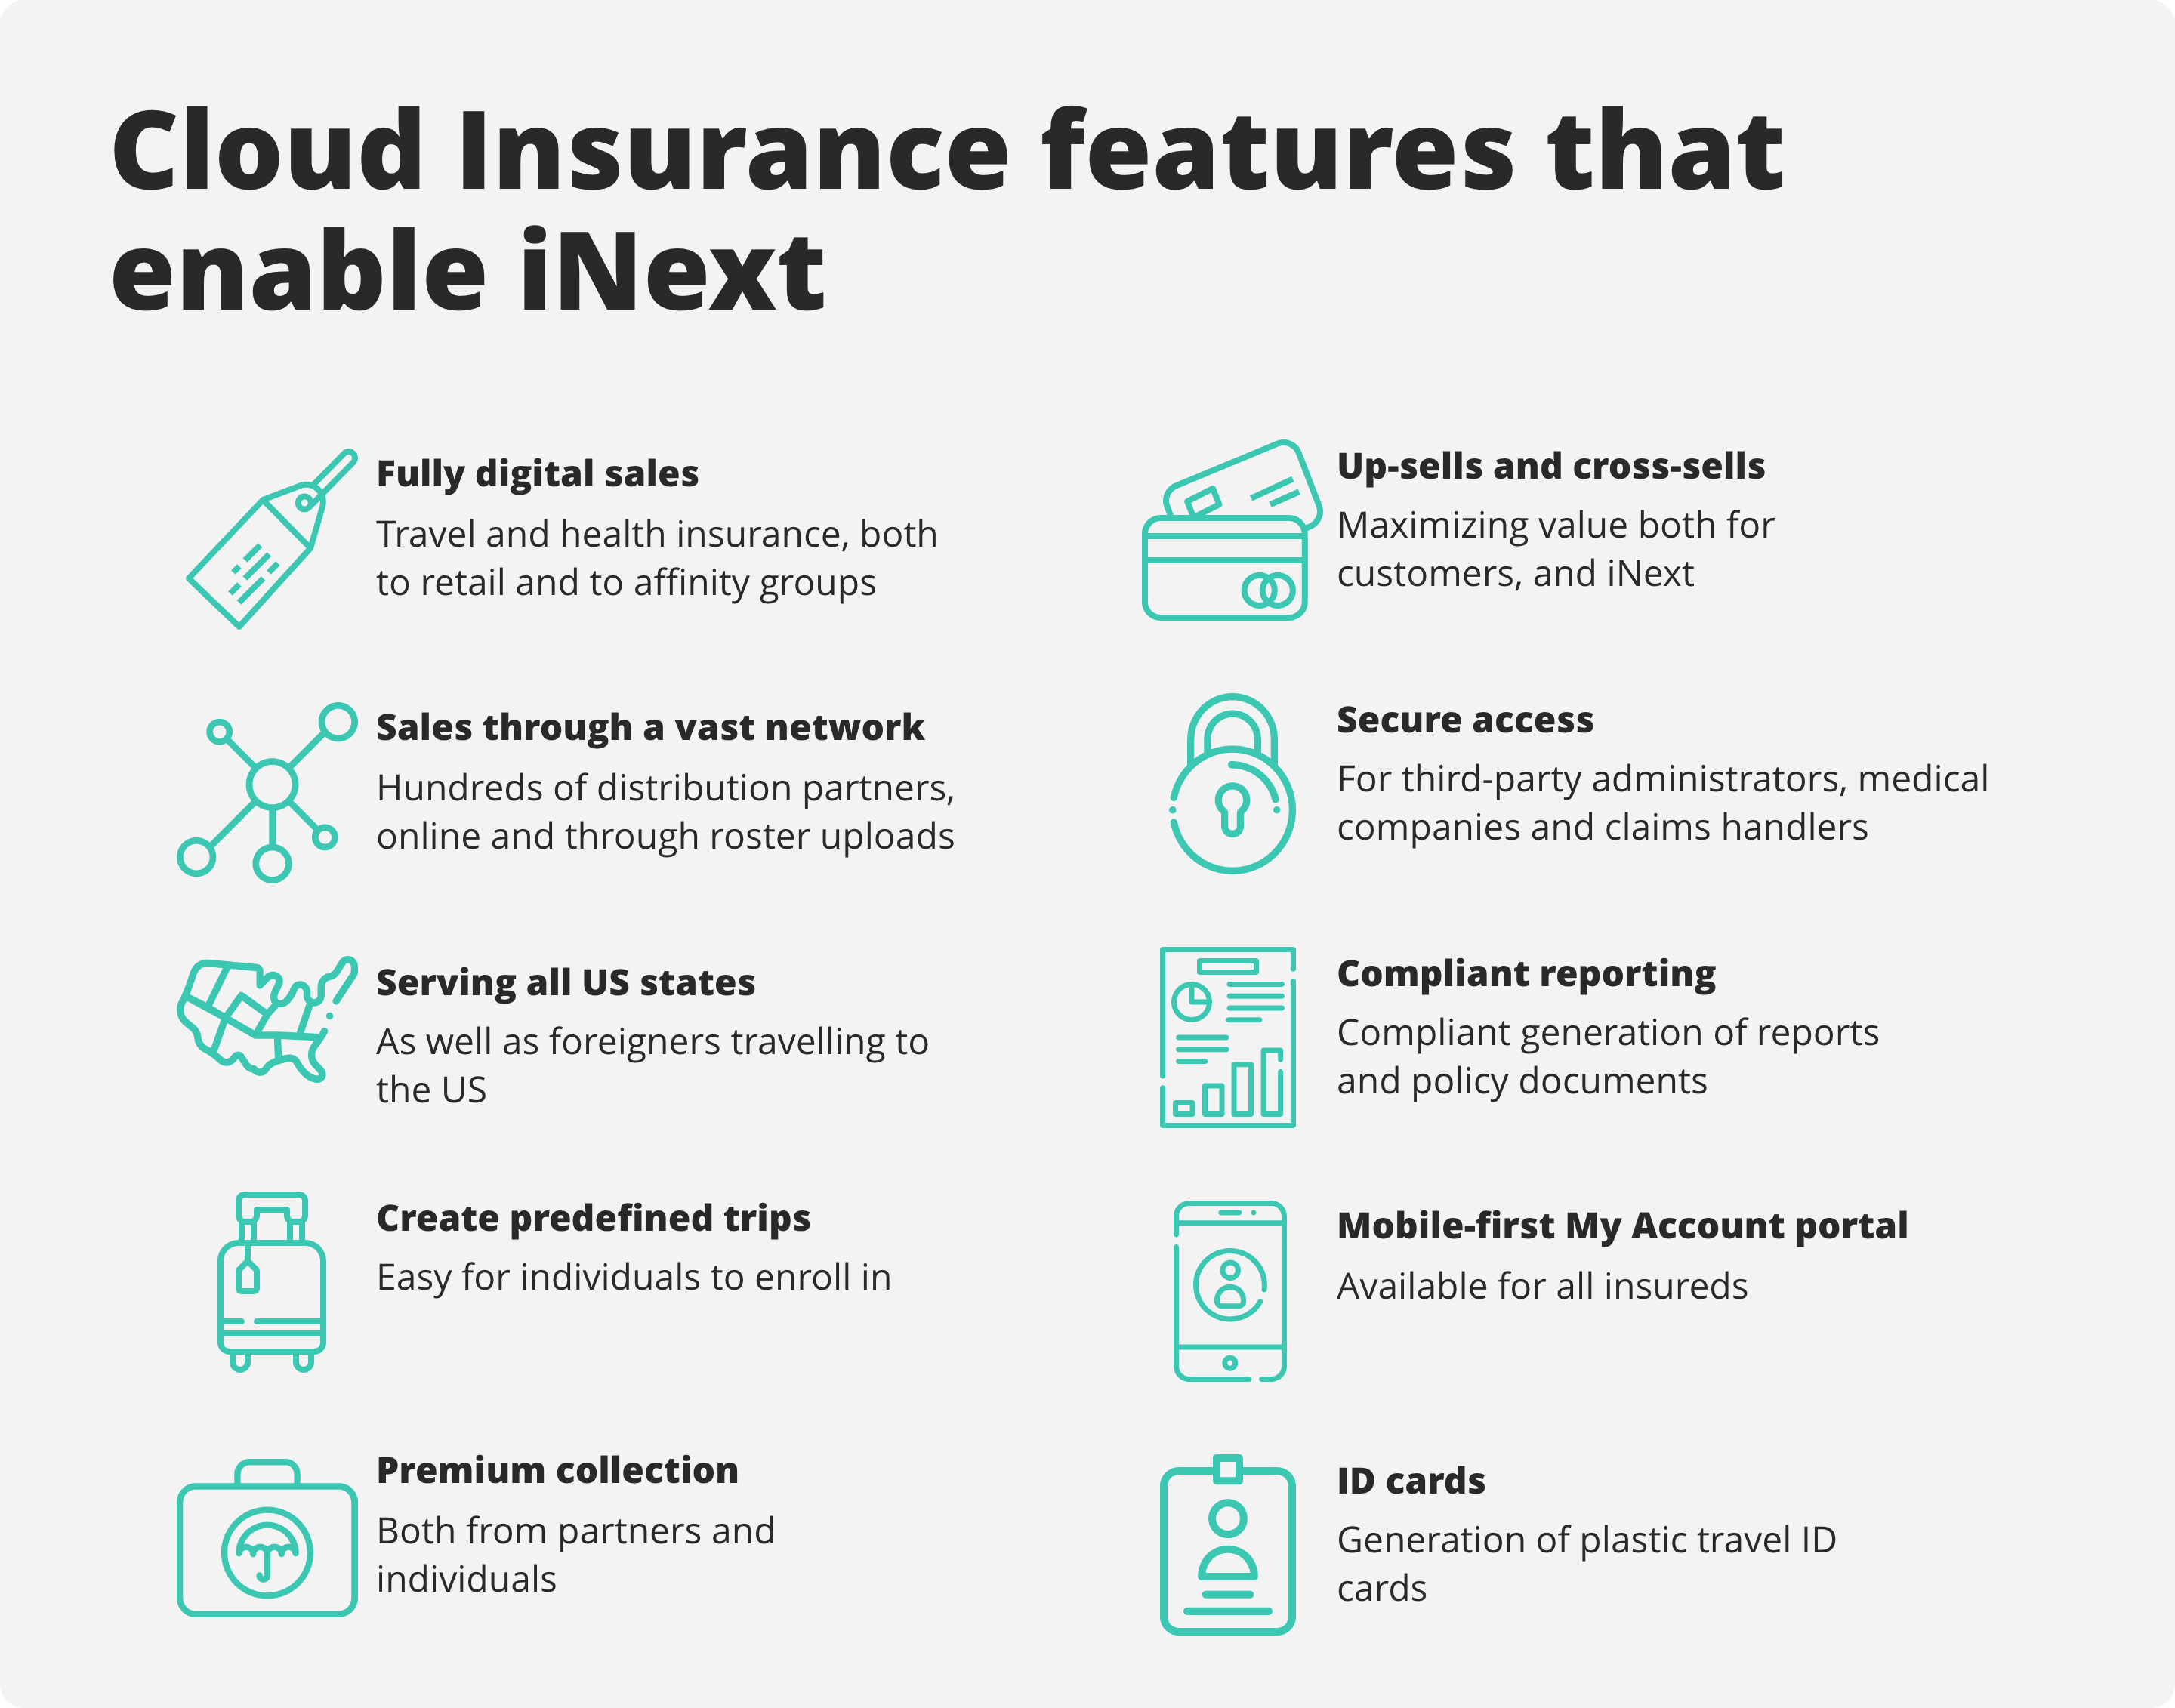 An excerpt of the Cloud Insurance features that iNext use.